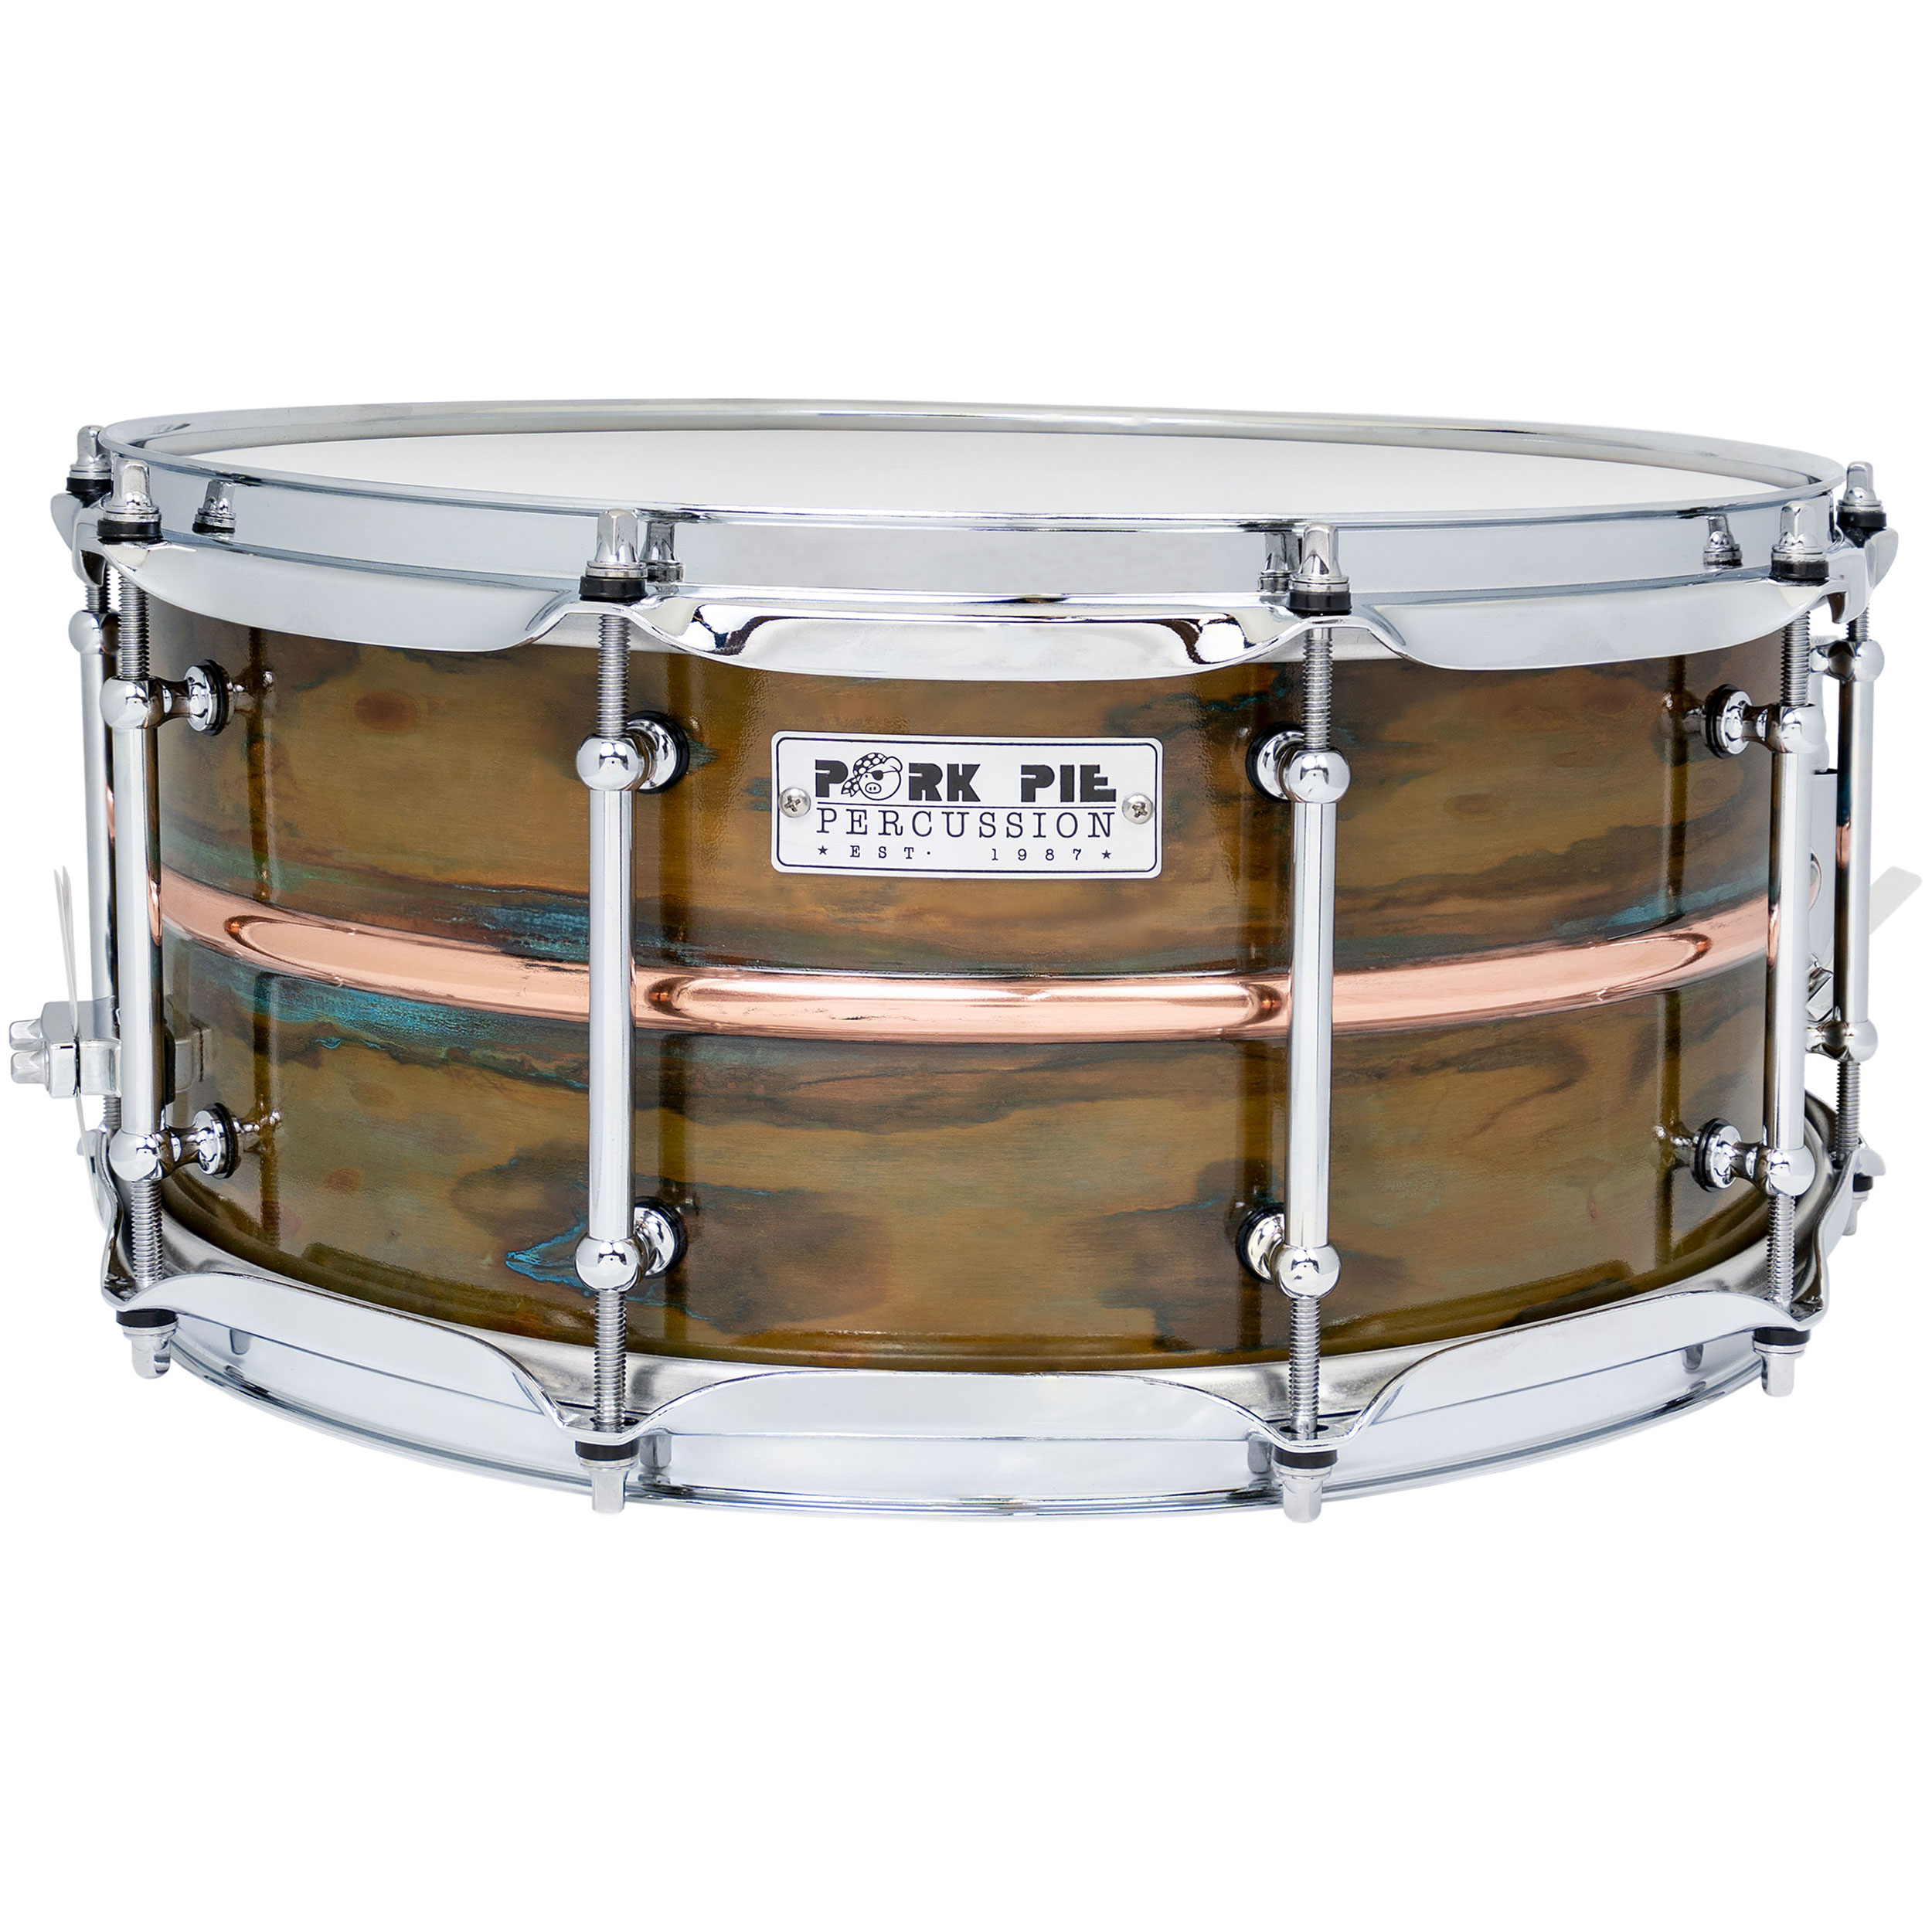 """Pork Pie Percussion 6.5"""" x 14"""" Copper Patina Snare Drum with Polished Bead"""